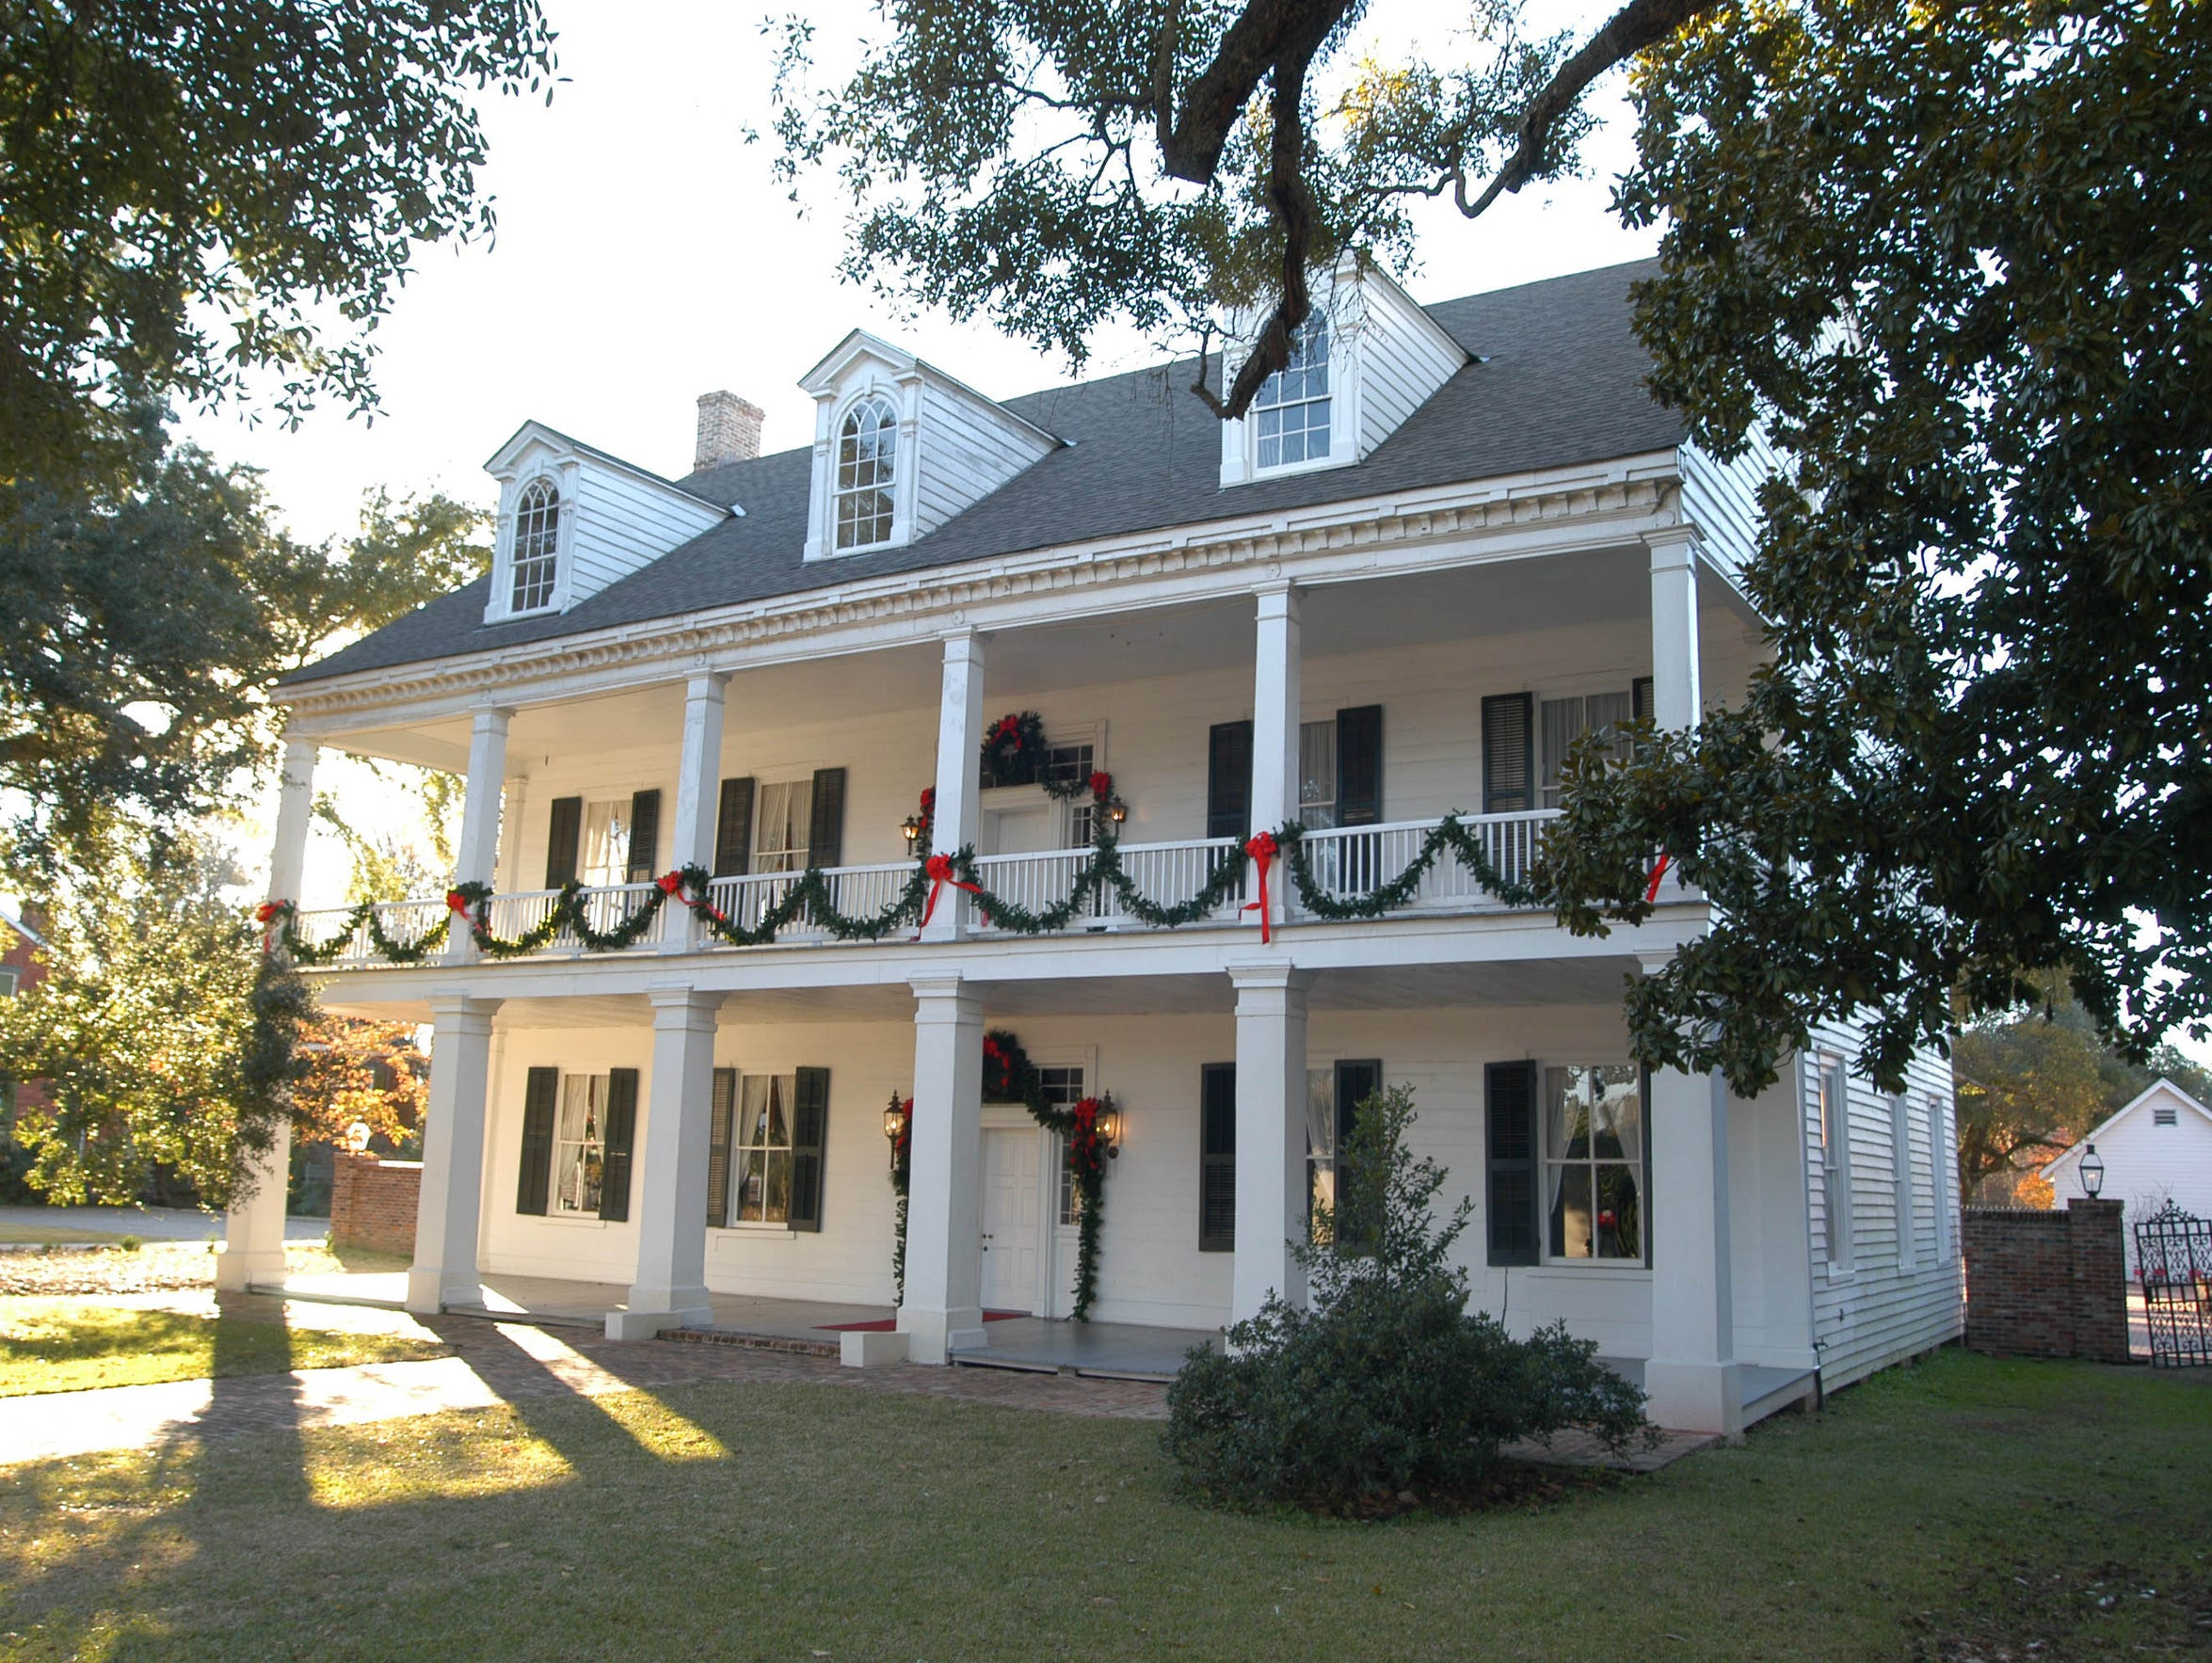 The Prudhomme-Rouquier home is among those on Natchitoches